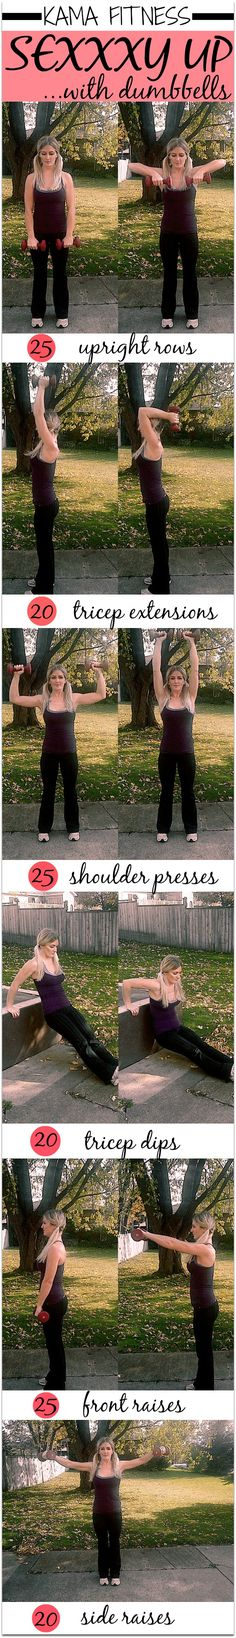 THE WORKOUT  Complete the following exercises & reps without any rest in between each exercise. This is one round. Complete a total of 3 rounds with 2 minutes rest in between each round. If you're advances – skip rest altogether and aim for 5 rounds. 25 Upright Rows 20 Tricep Extensions 25 Shoulder Presses 20 Tricep Dips 25 Front Raises 20 Side Raises